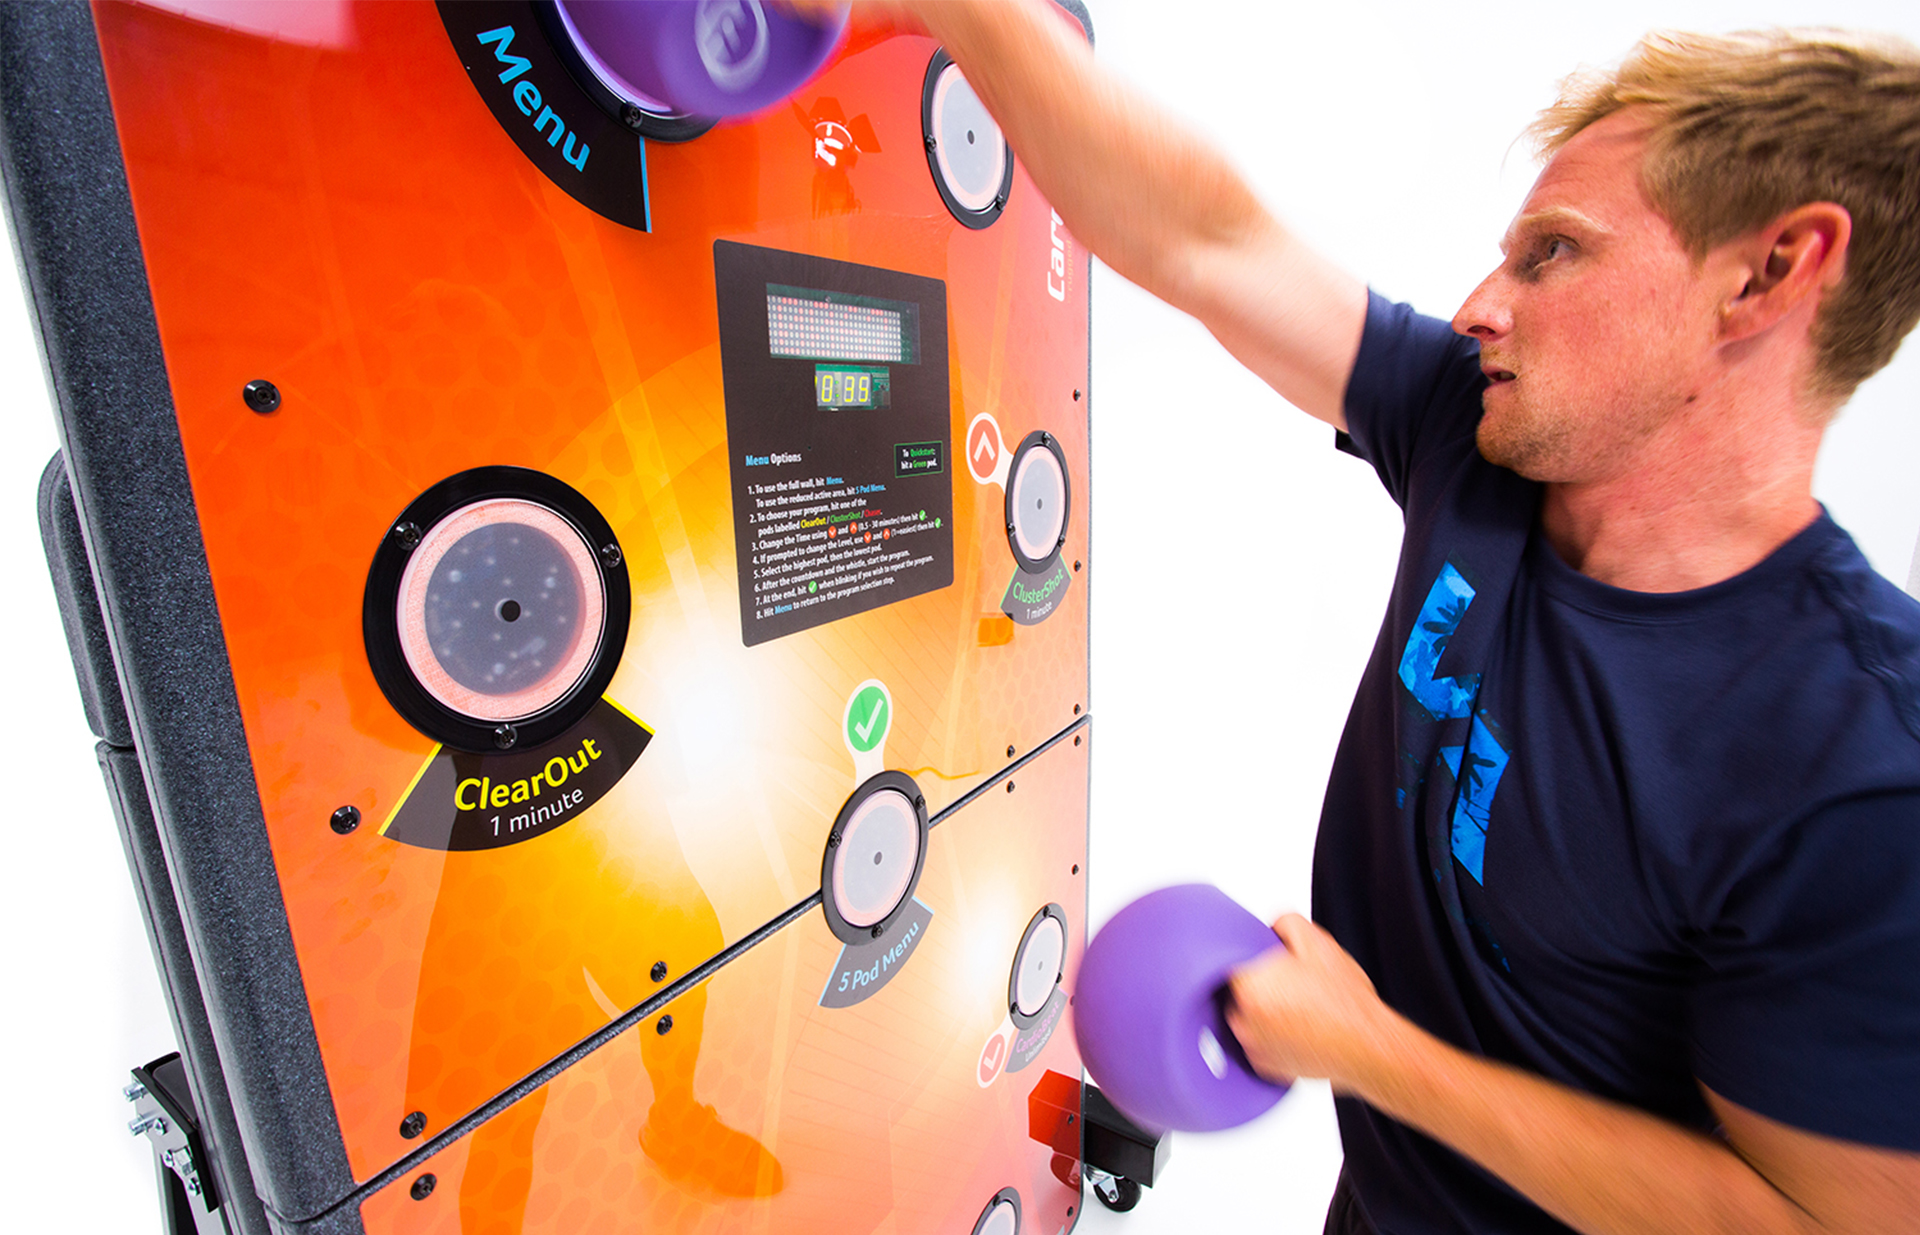 Fun and motivational fitness equipment for all abilities